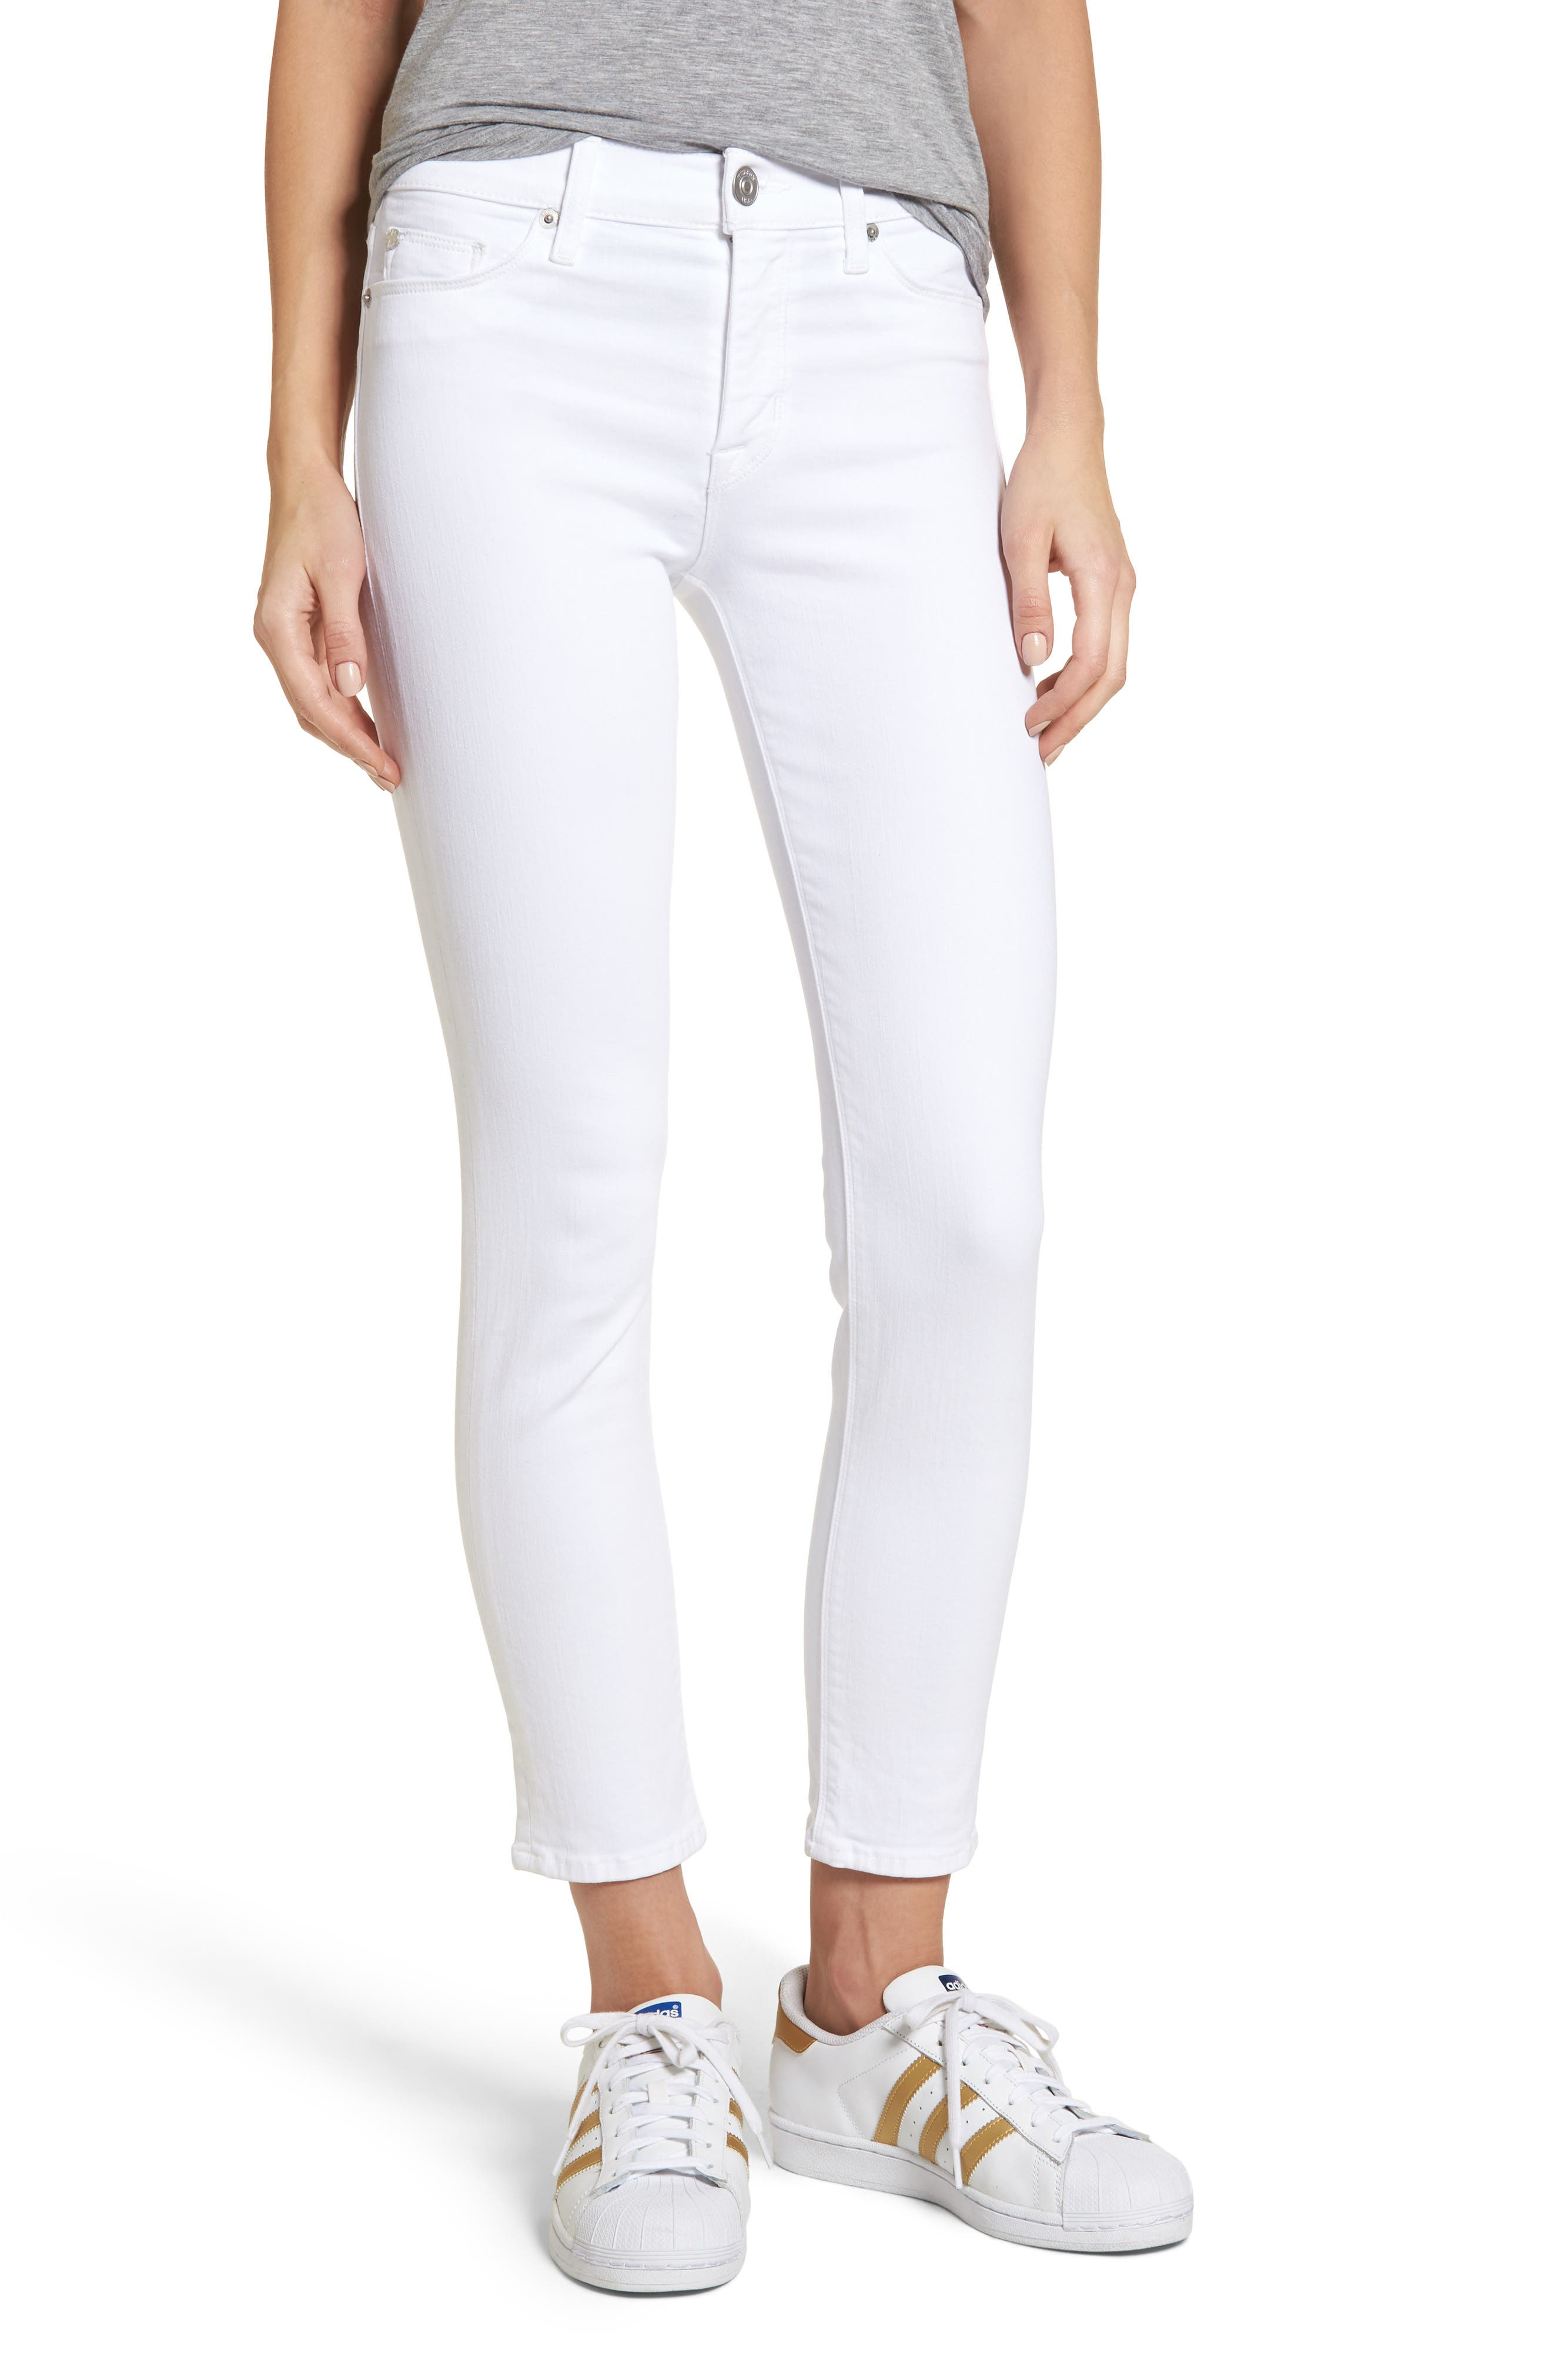 Tally Ankle Skinny Jeans,                             Main thumbnail 1, color,                             Optical White